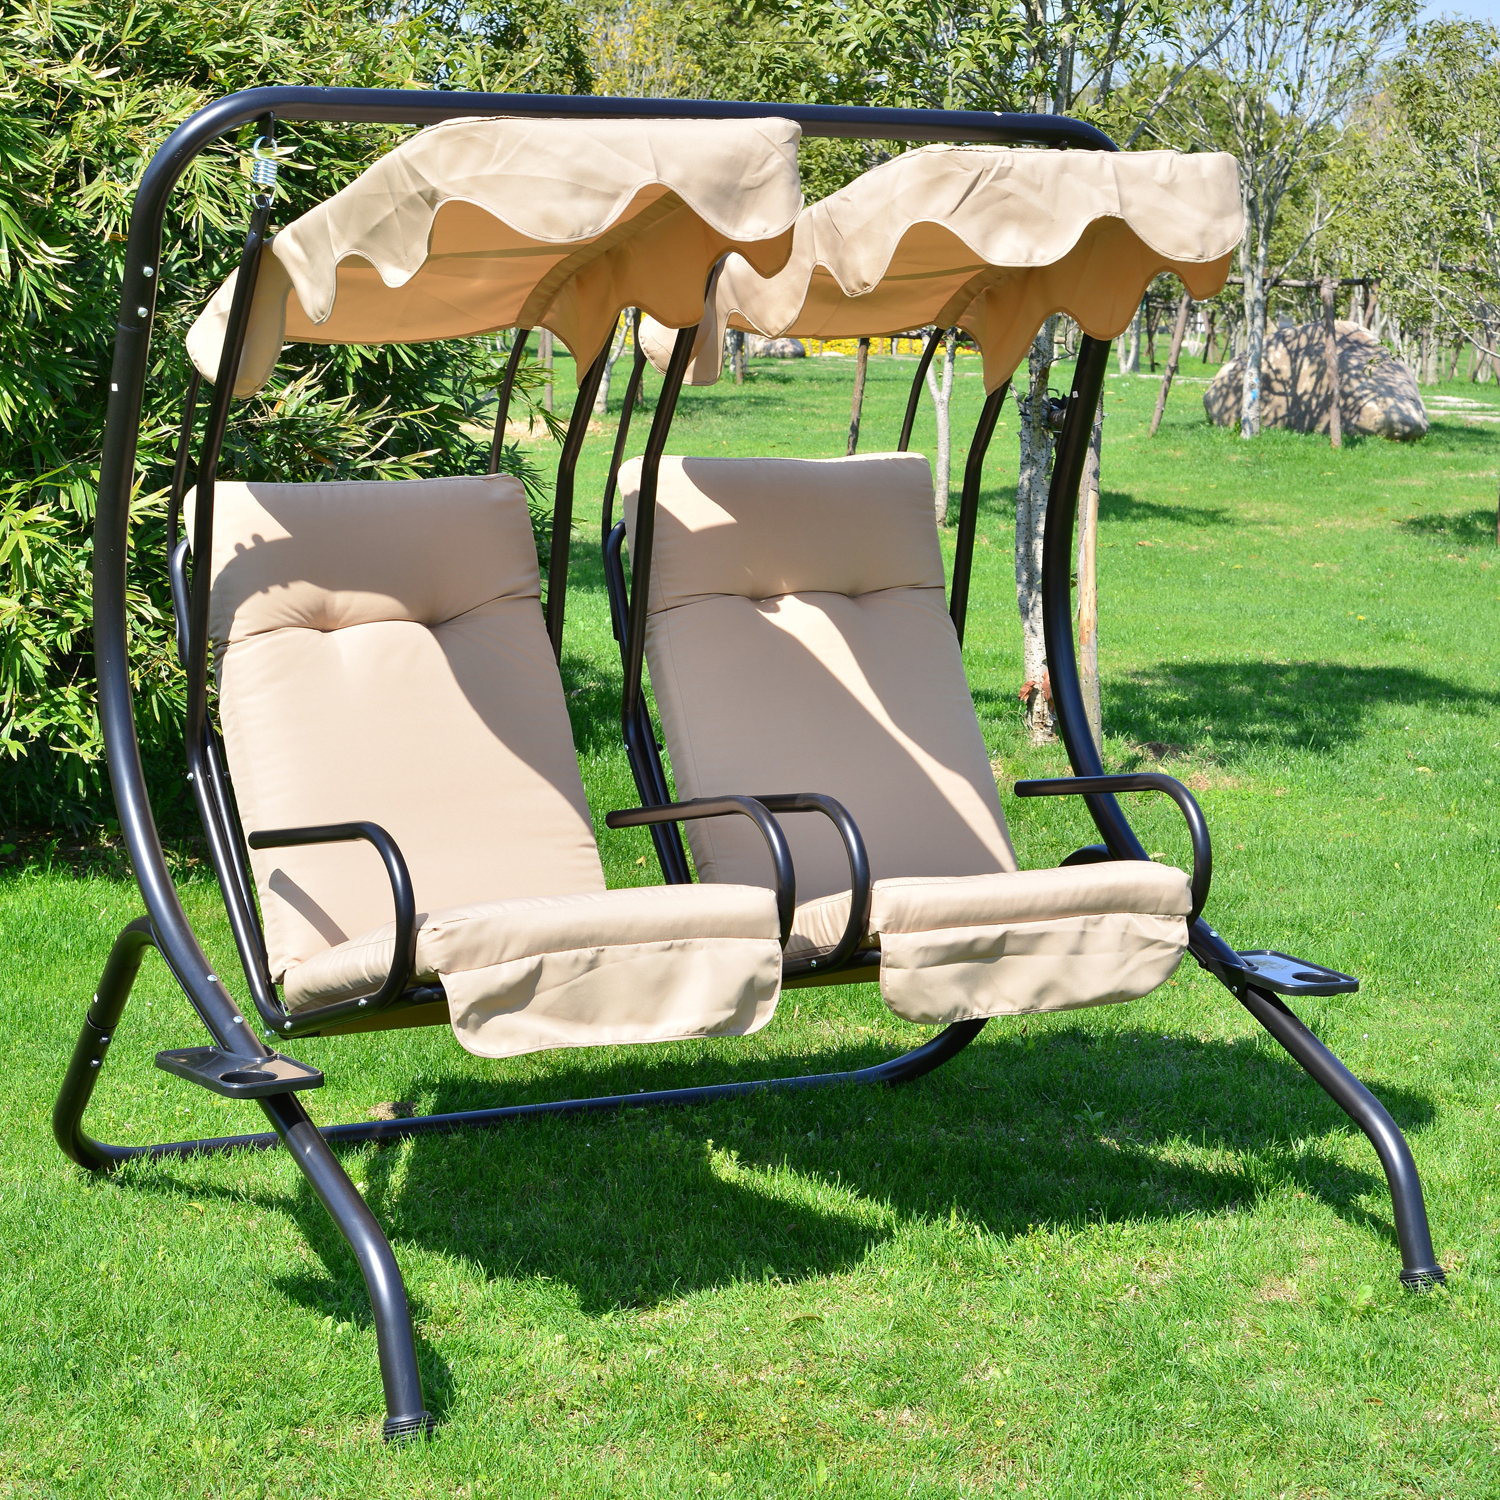 Fashionable Canopy Patio Porch Swing With Stand In Outsunny Porch Swings (View 20 of 30)